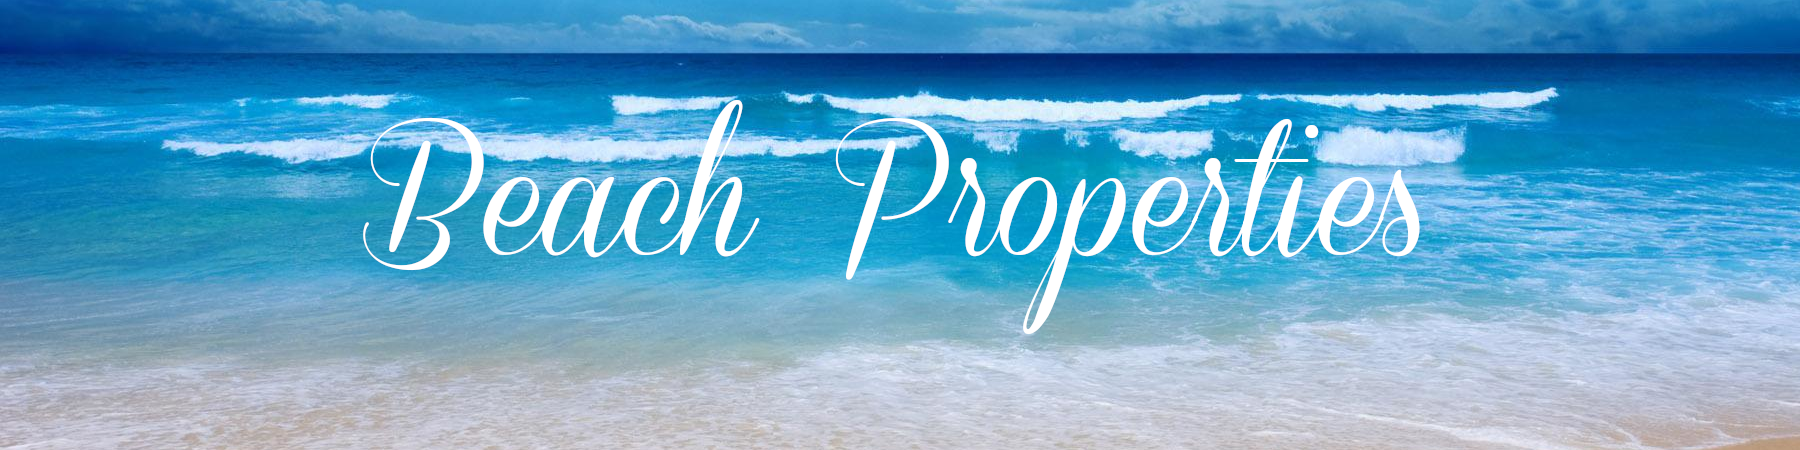 Beach Properties For Sale Or Rent